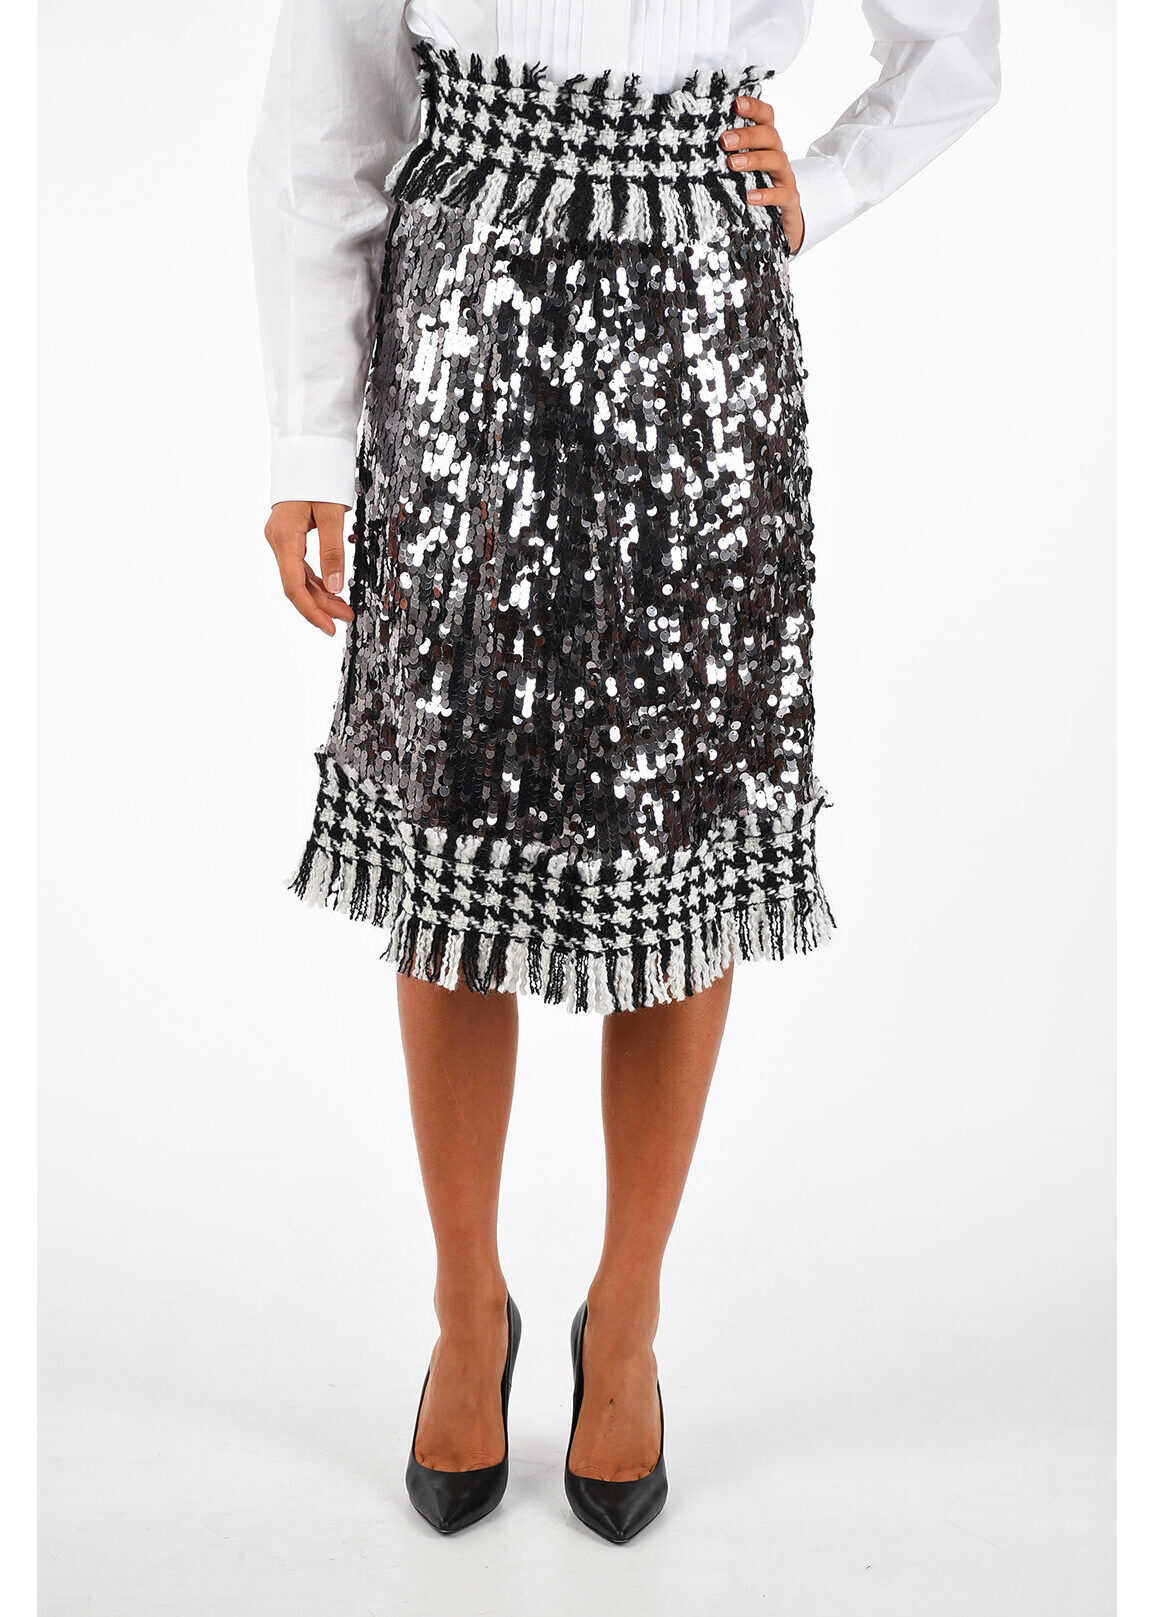 Dolce & Gabbana two-tone sequined pencil skirt BLACK & WHITE